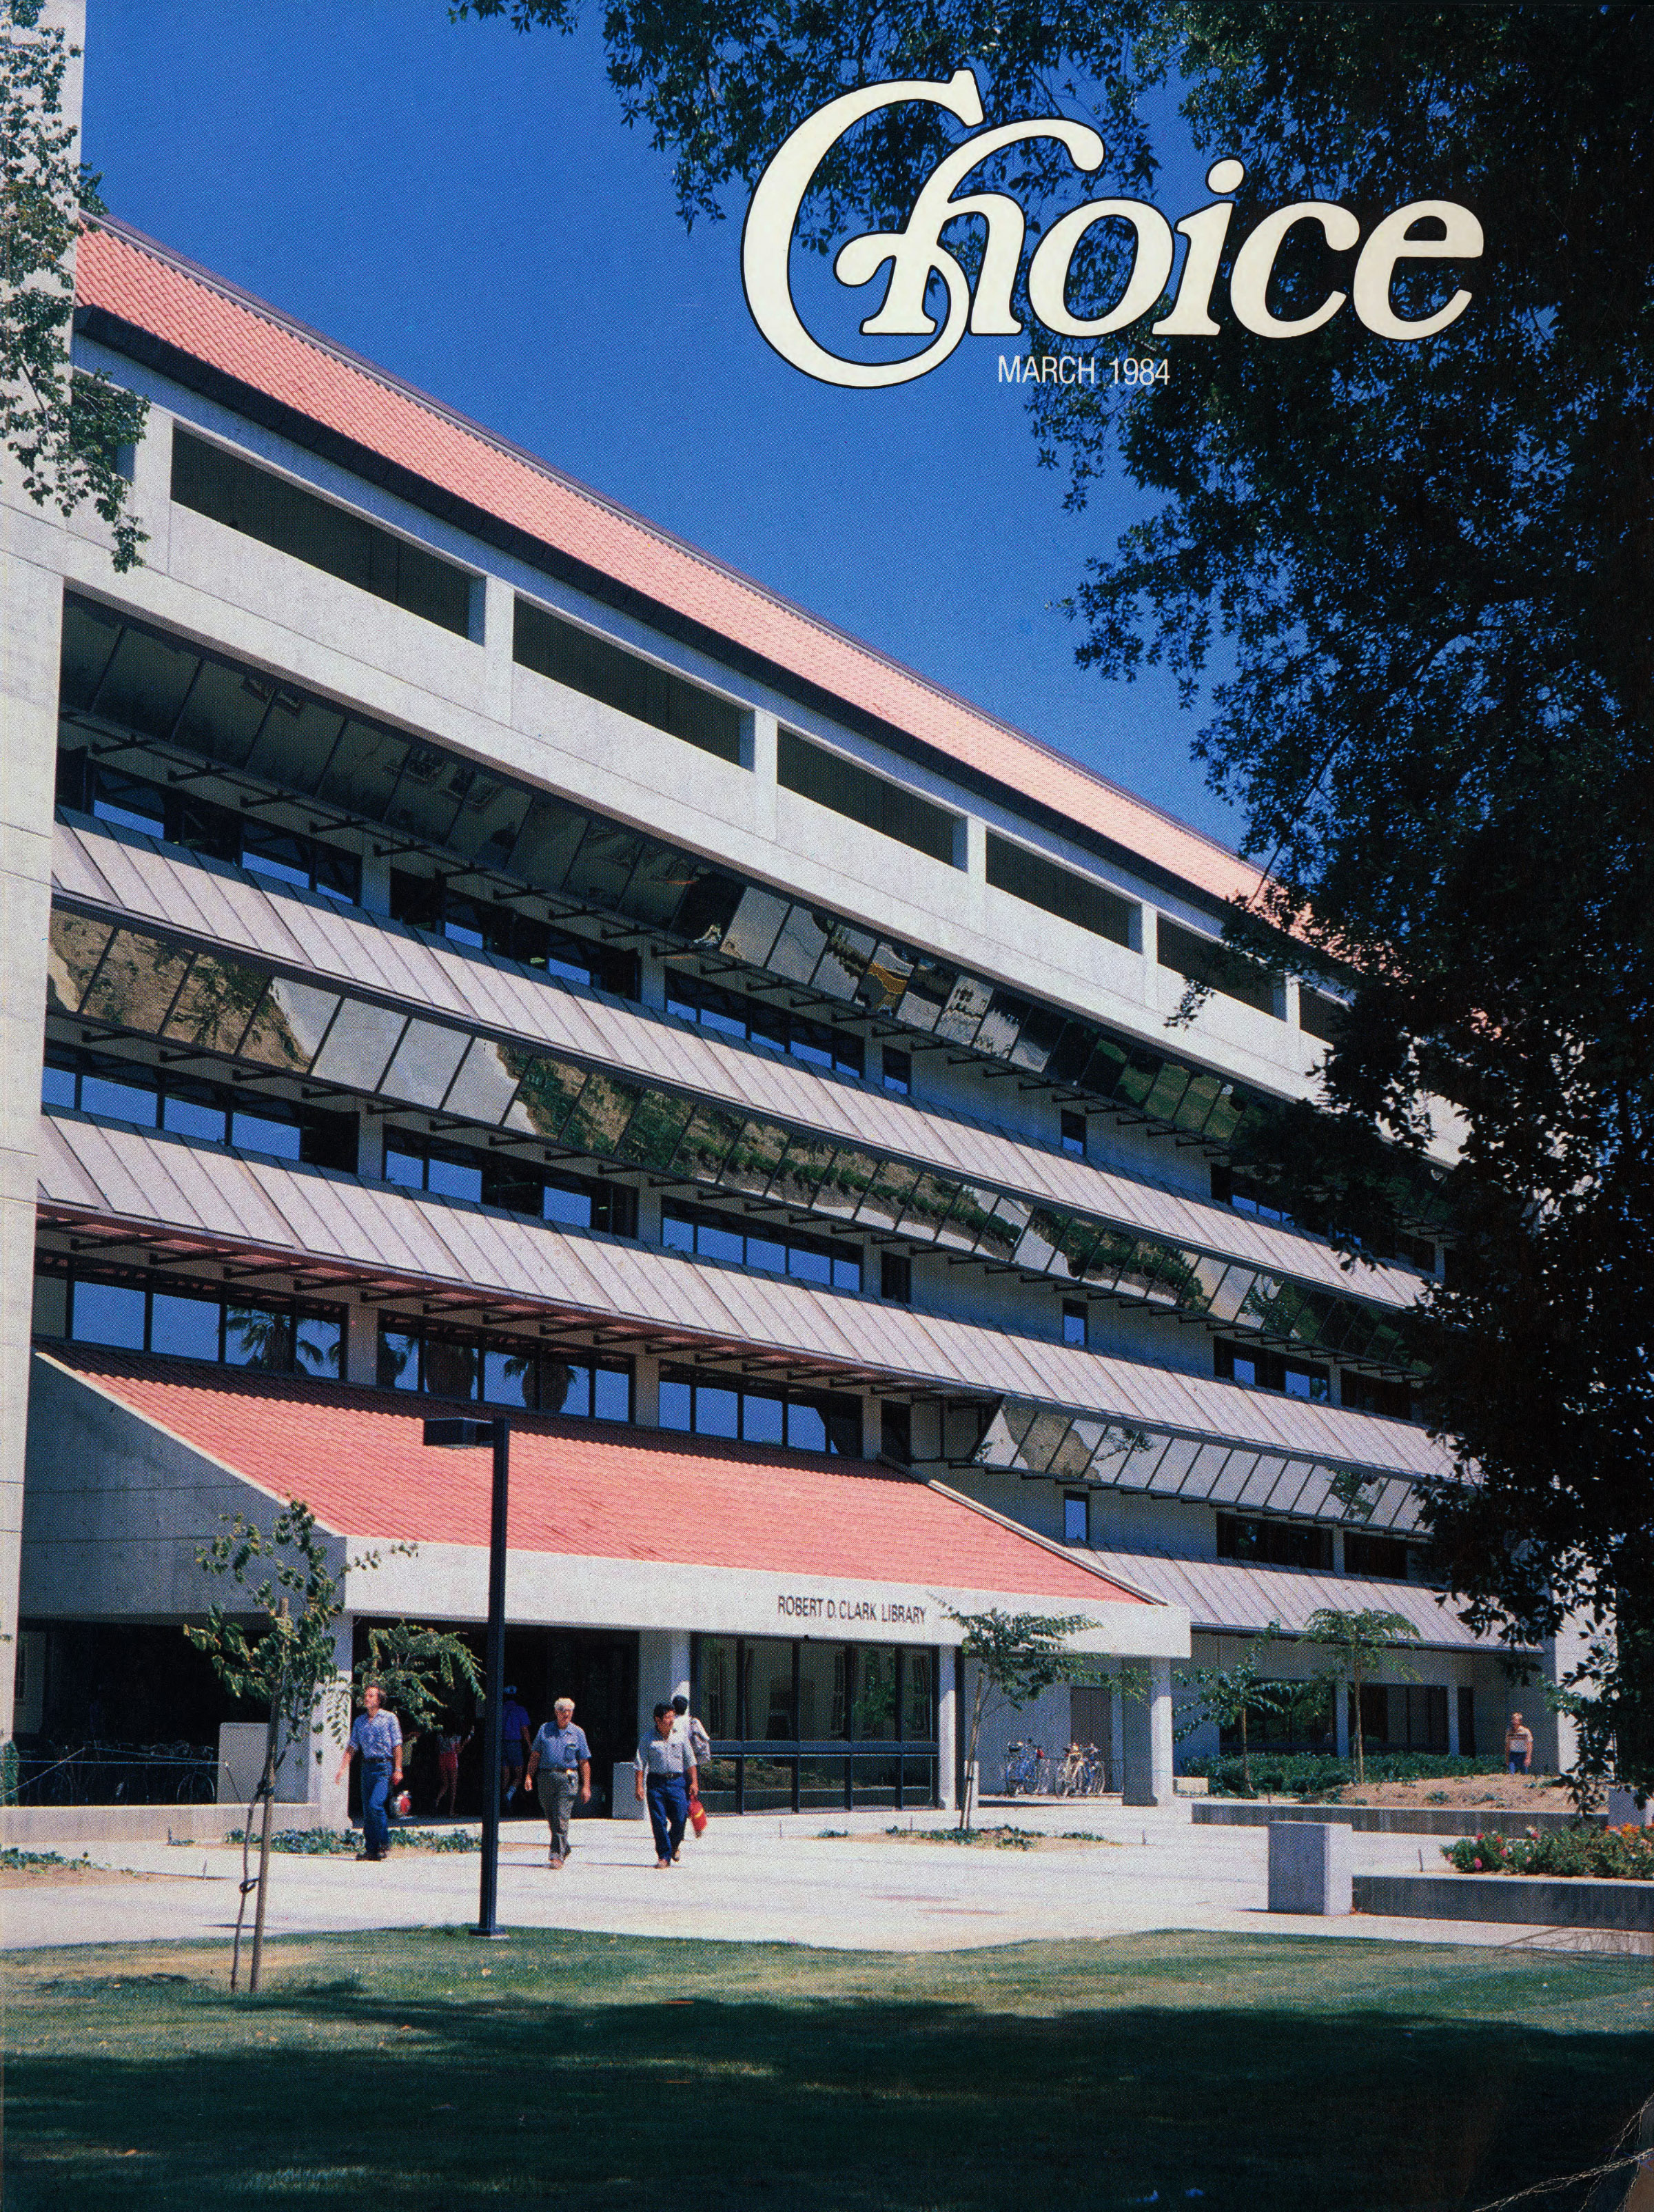 Robert D. Clark Library on the cover of the March 1984 issue of Choice